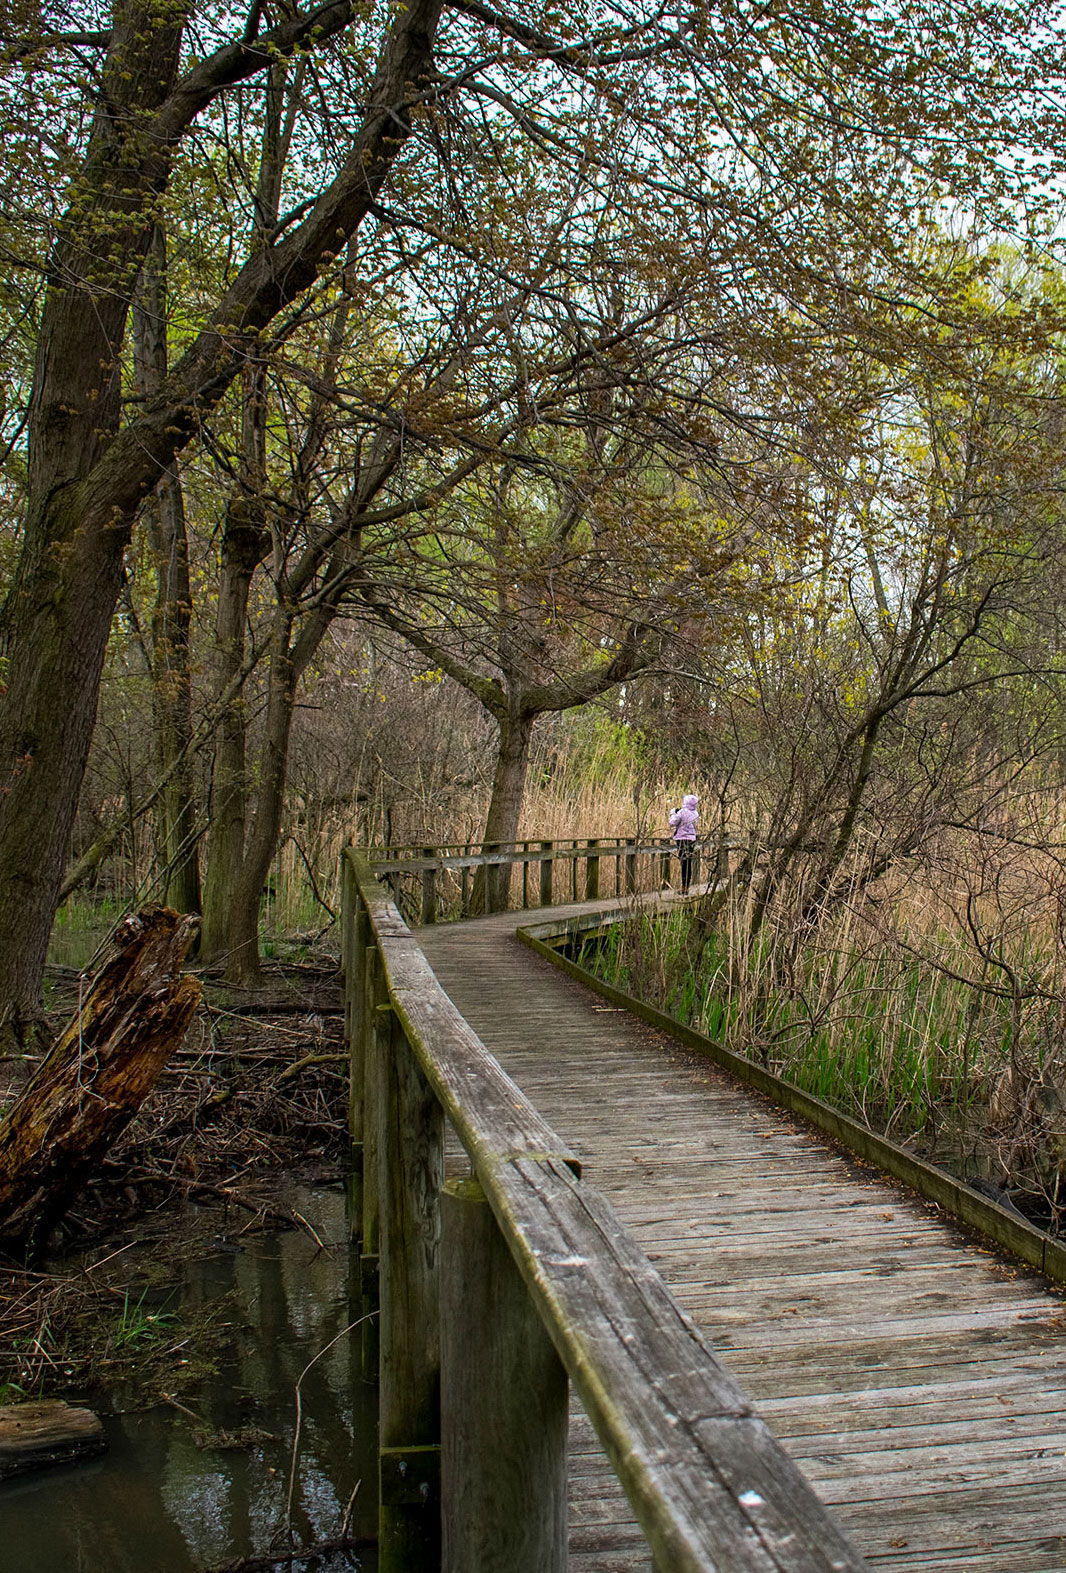 The boardwalk at Maumee Bay State Park, one of several locations birders can visit during the the Biggest Week in American Birding. Lia Bocchiaro/Audubon